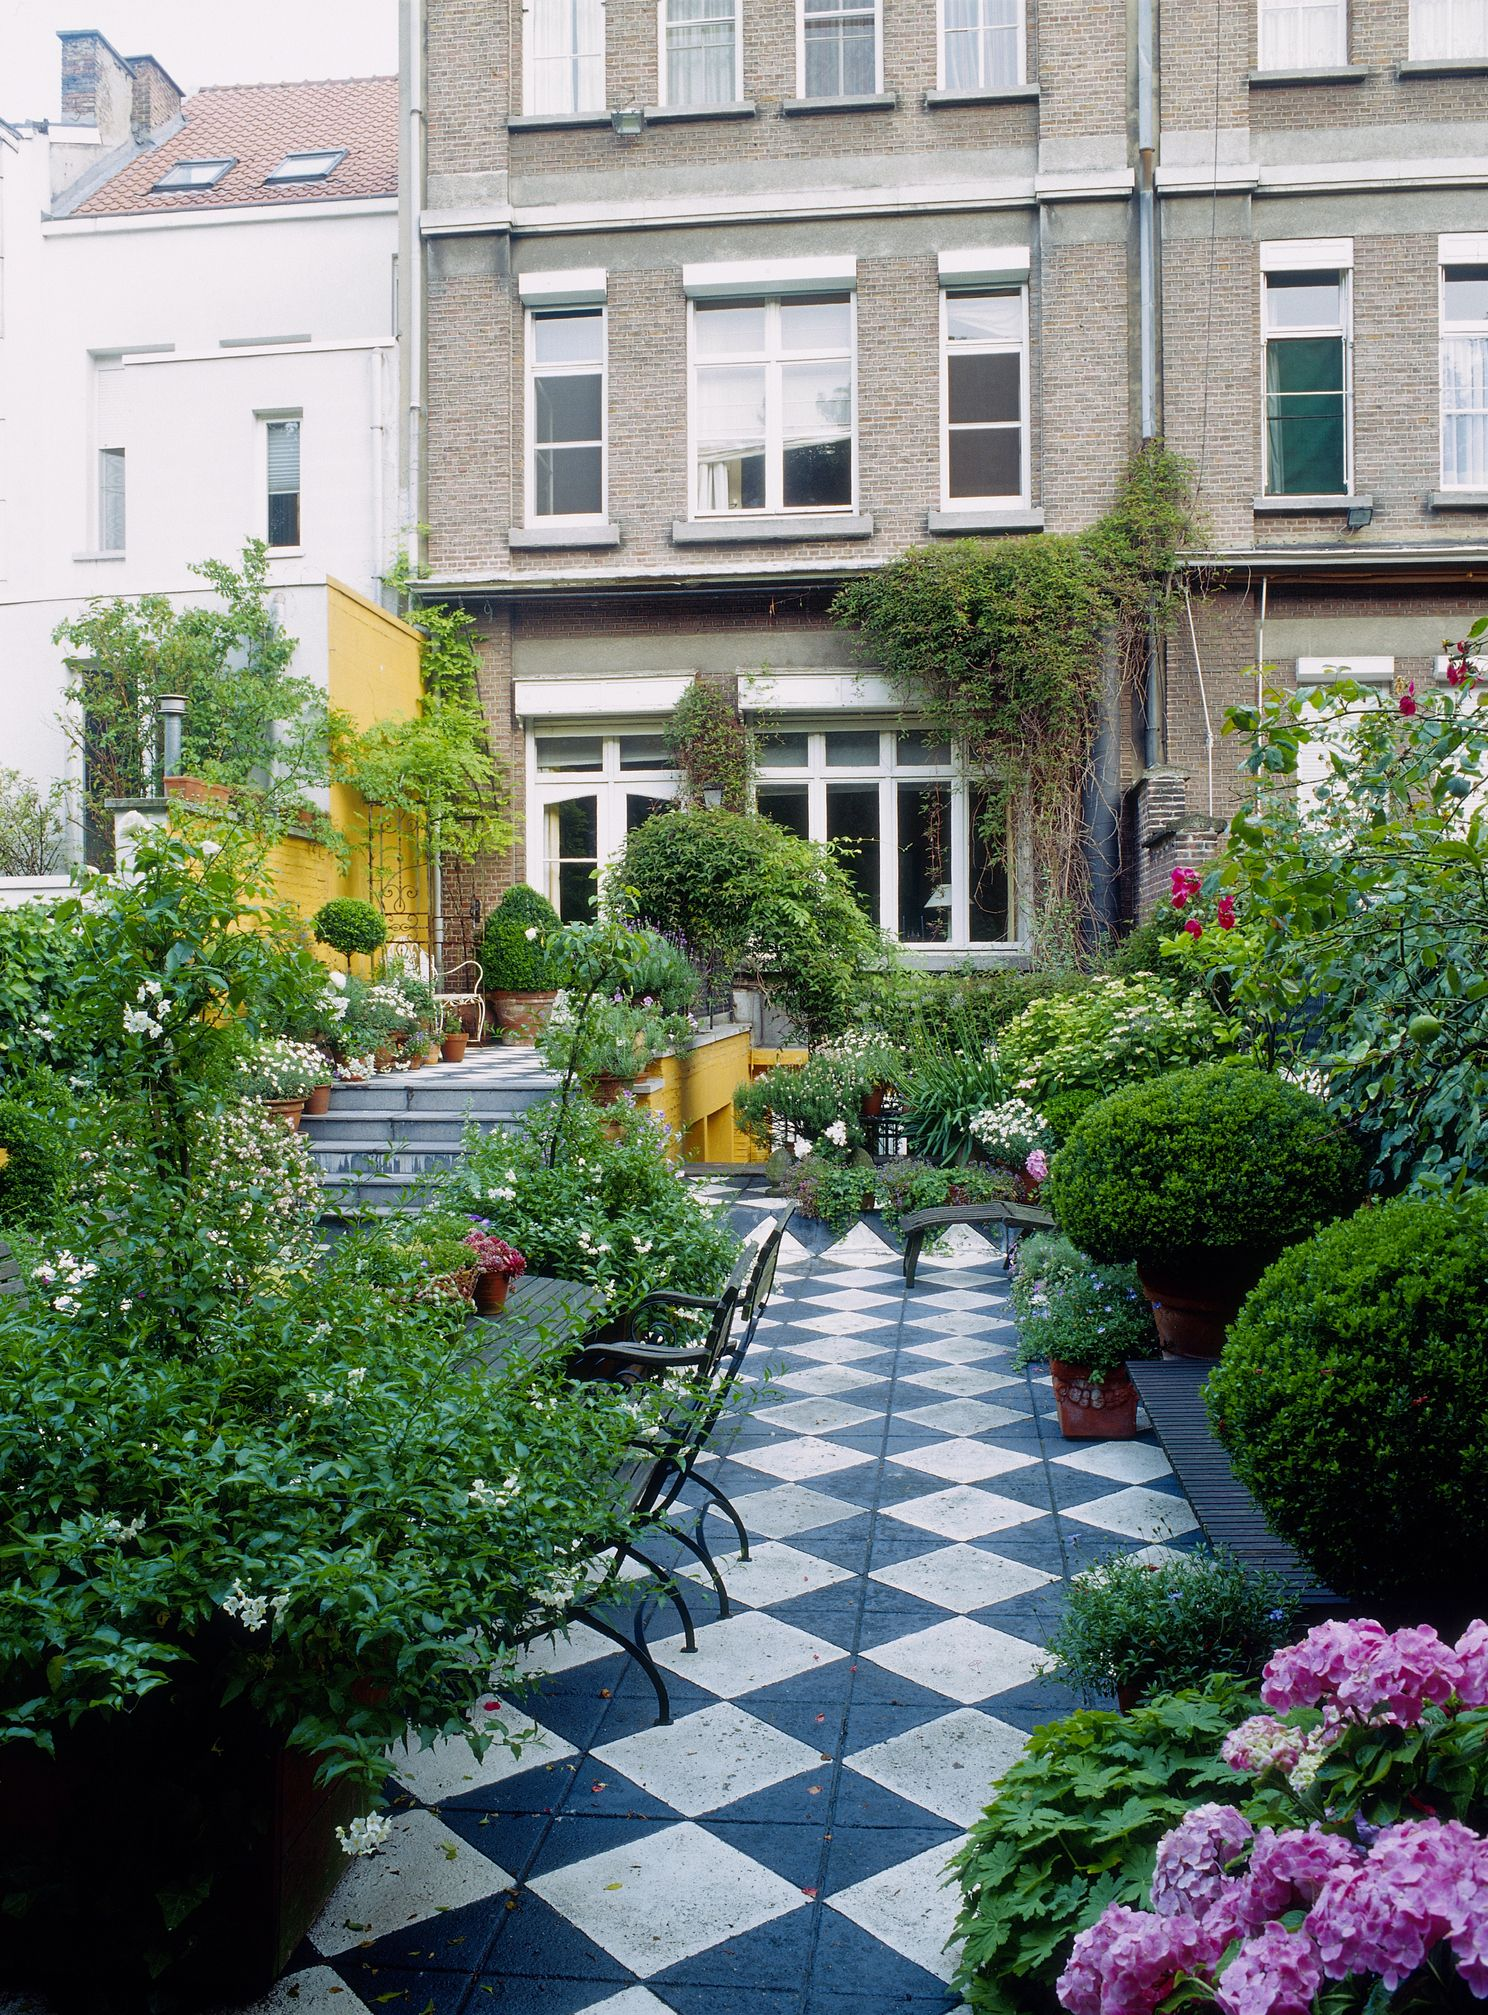 Checkered tiles in patio - long and narrow garden & Long Narrow Garden Design Ideas - Garden Shape Ideas